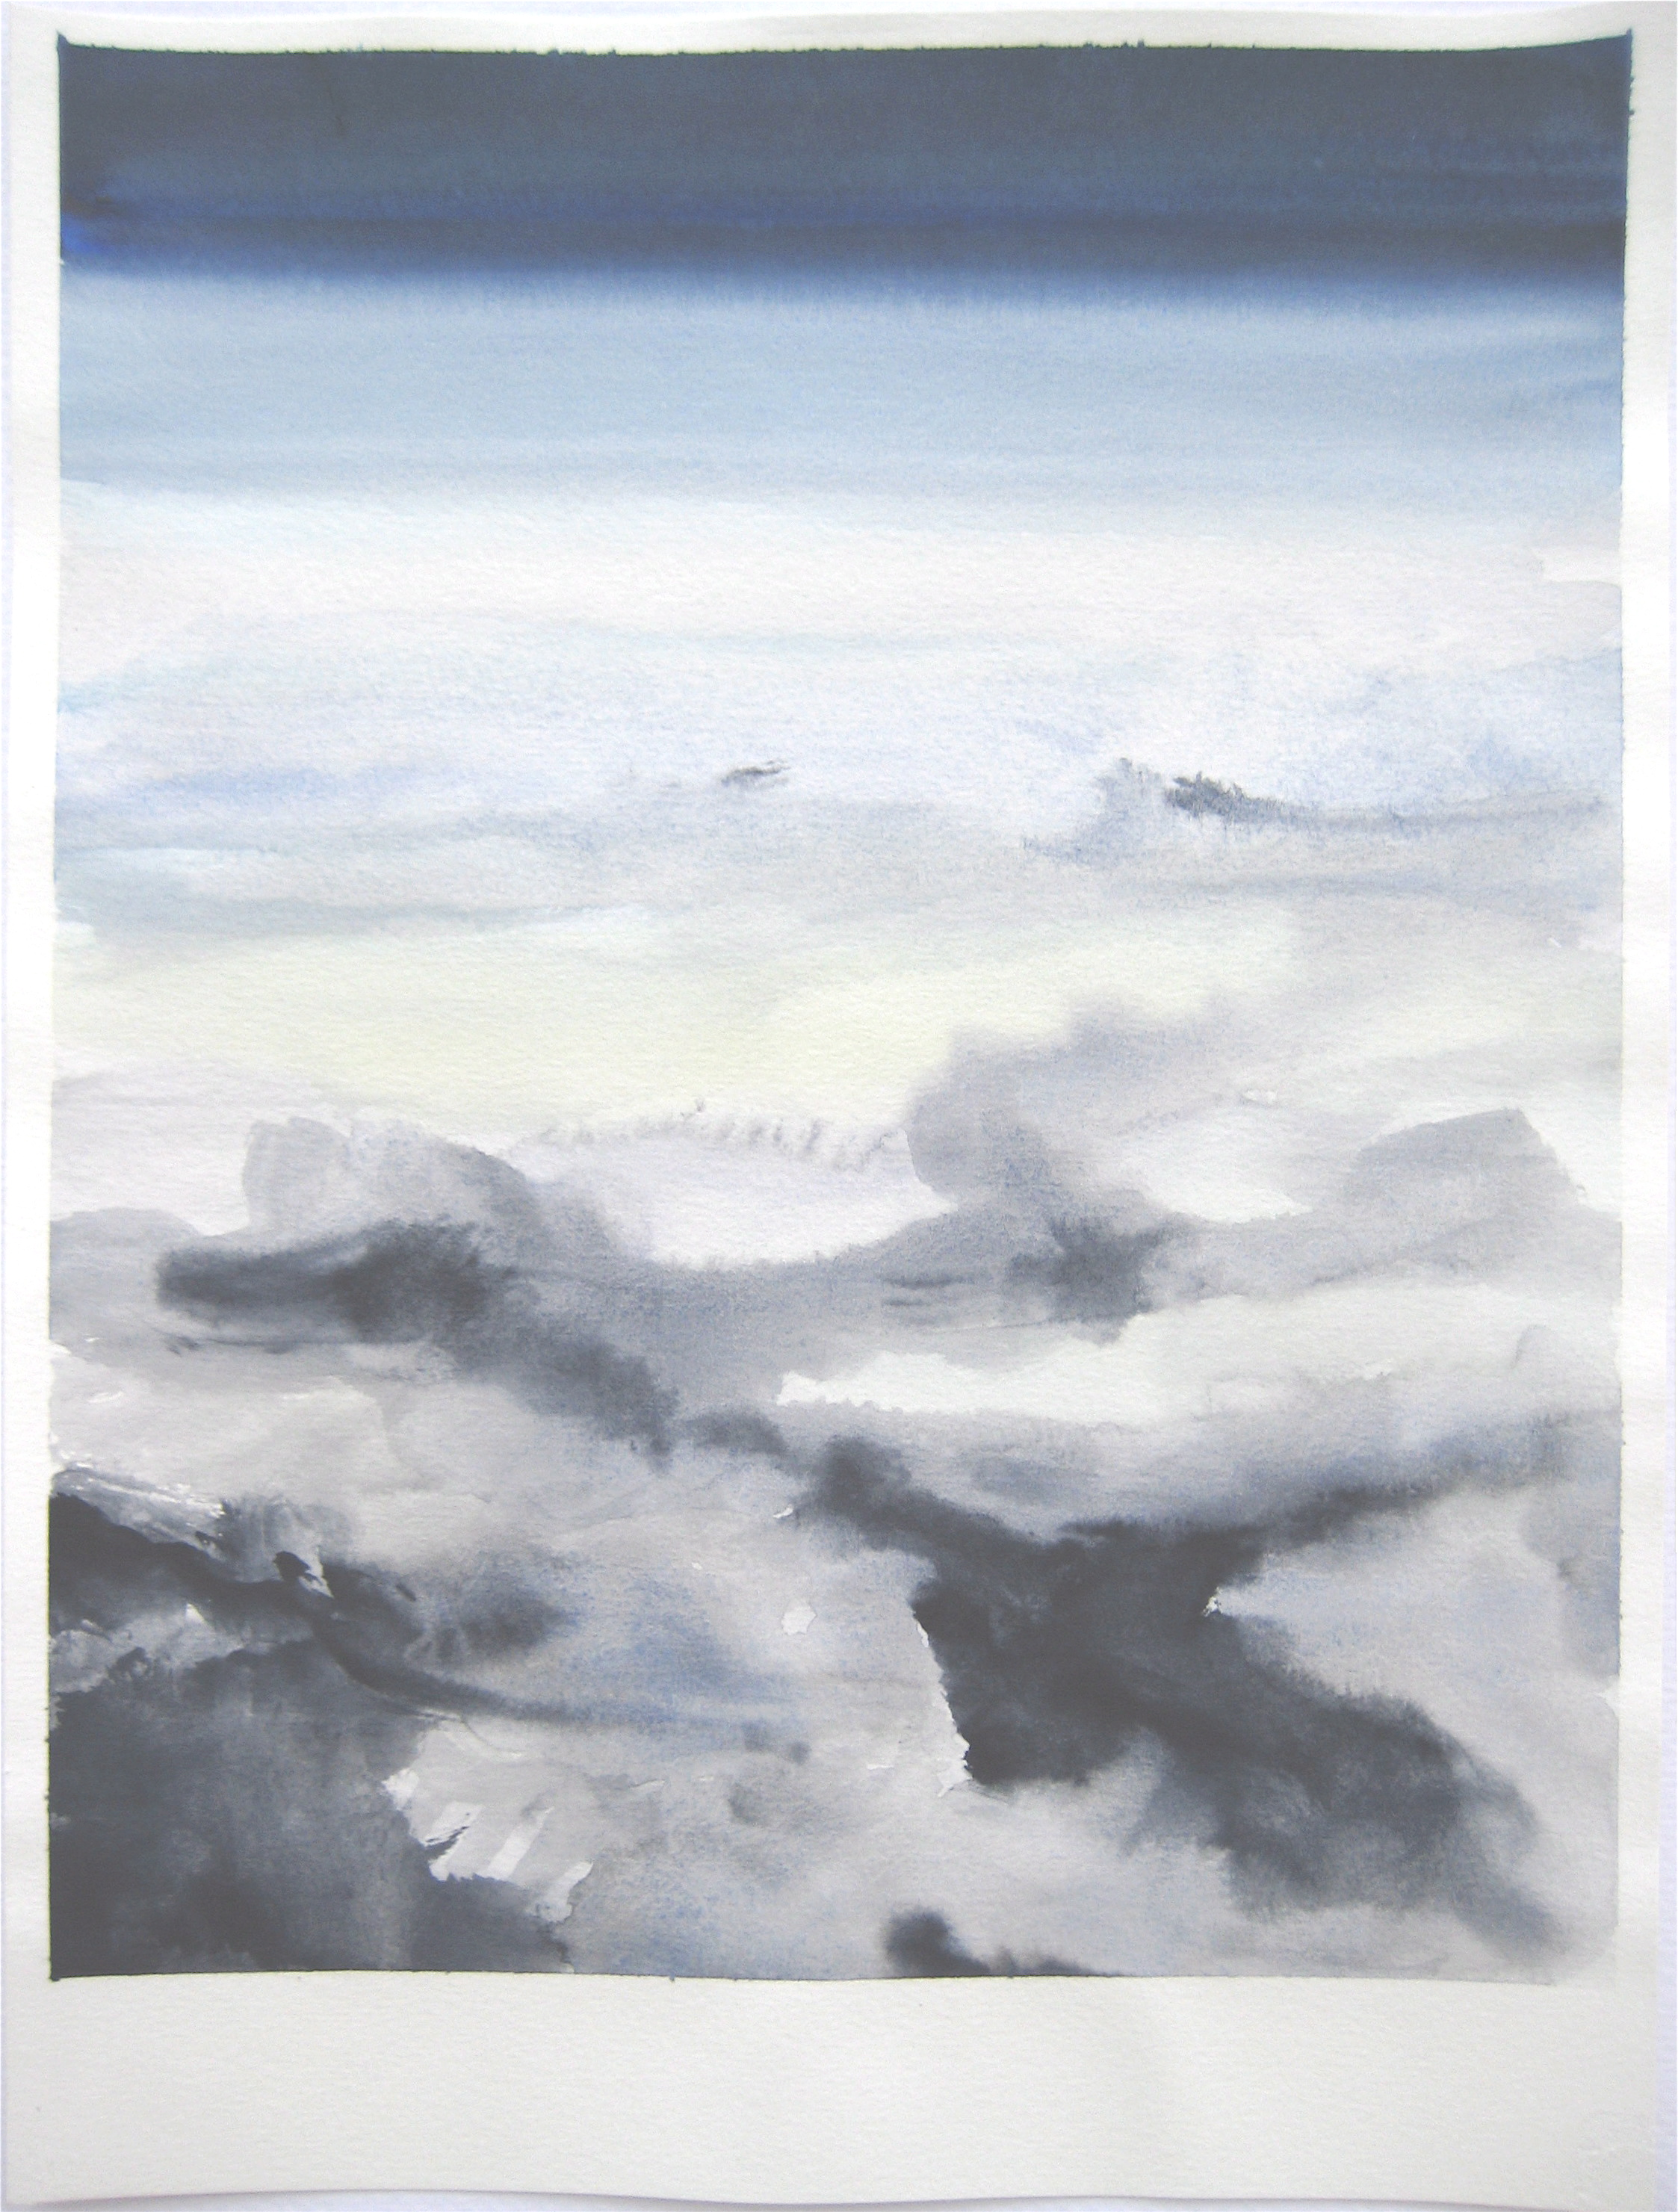 """Sky #4.3/2007, 2007, watercolor on paper paper: 12 6/8""""x9 1/2""""; image: 11 1/2""""x 9"""""""